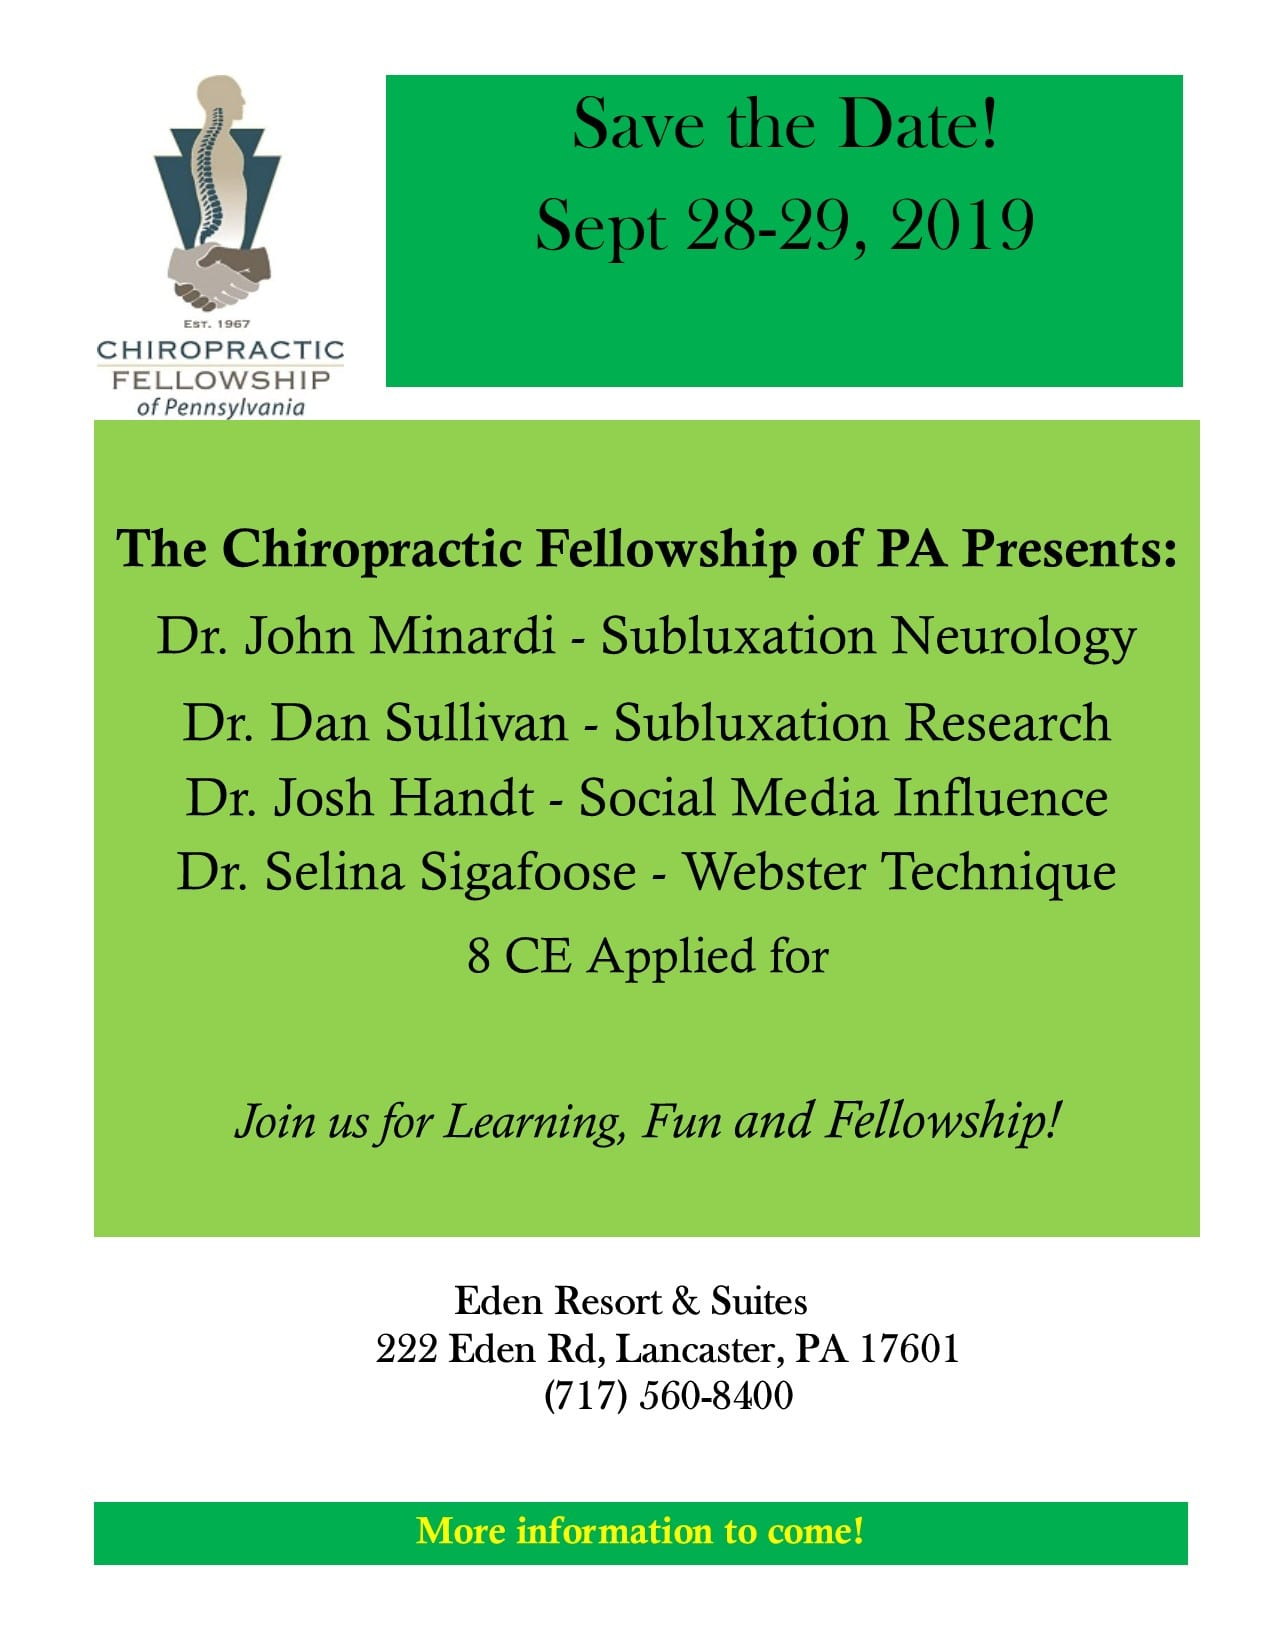 Save the Date – 2019 CFOP Conference – Chiropractic Fellowship of PA